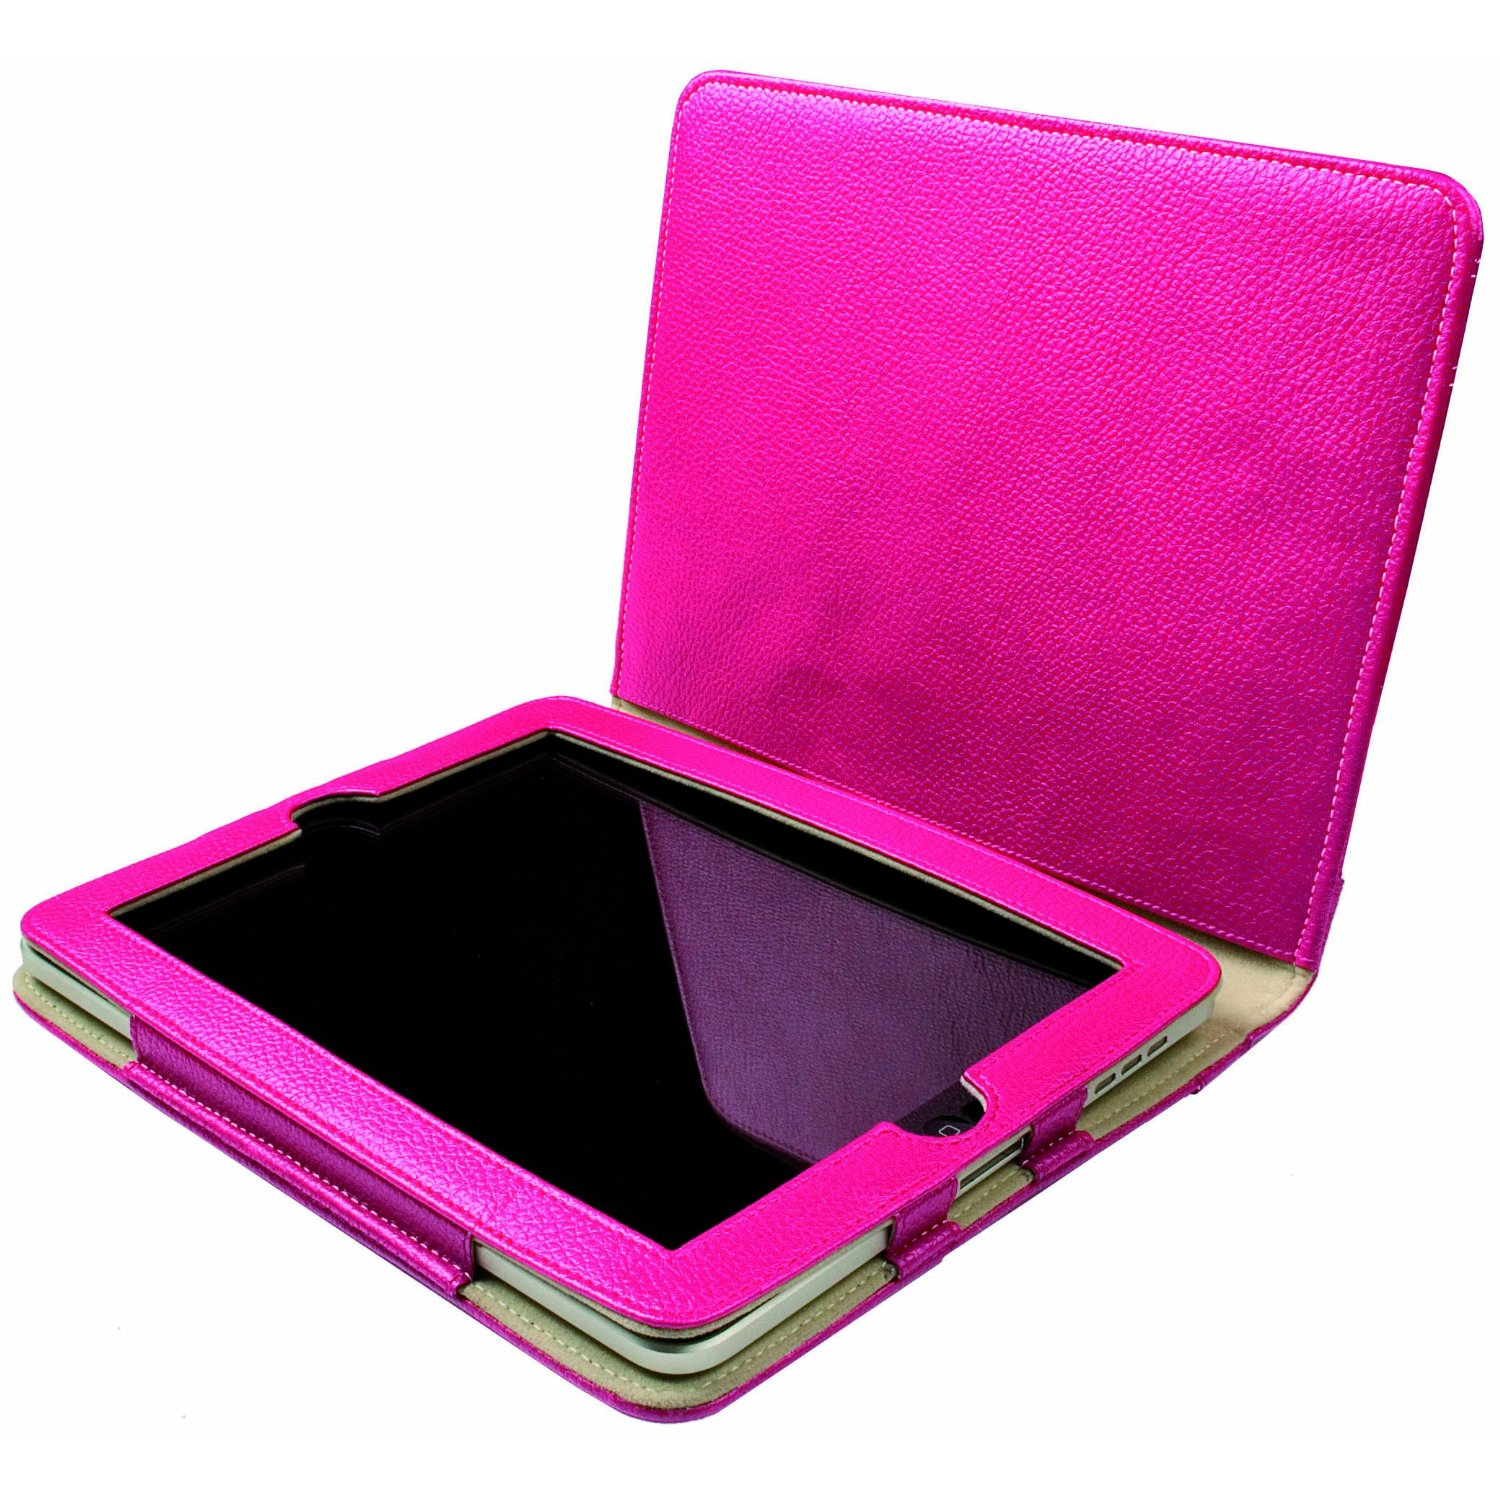 This Ipad Case Is Hot